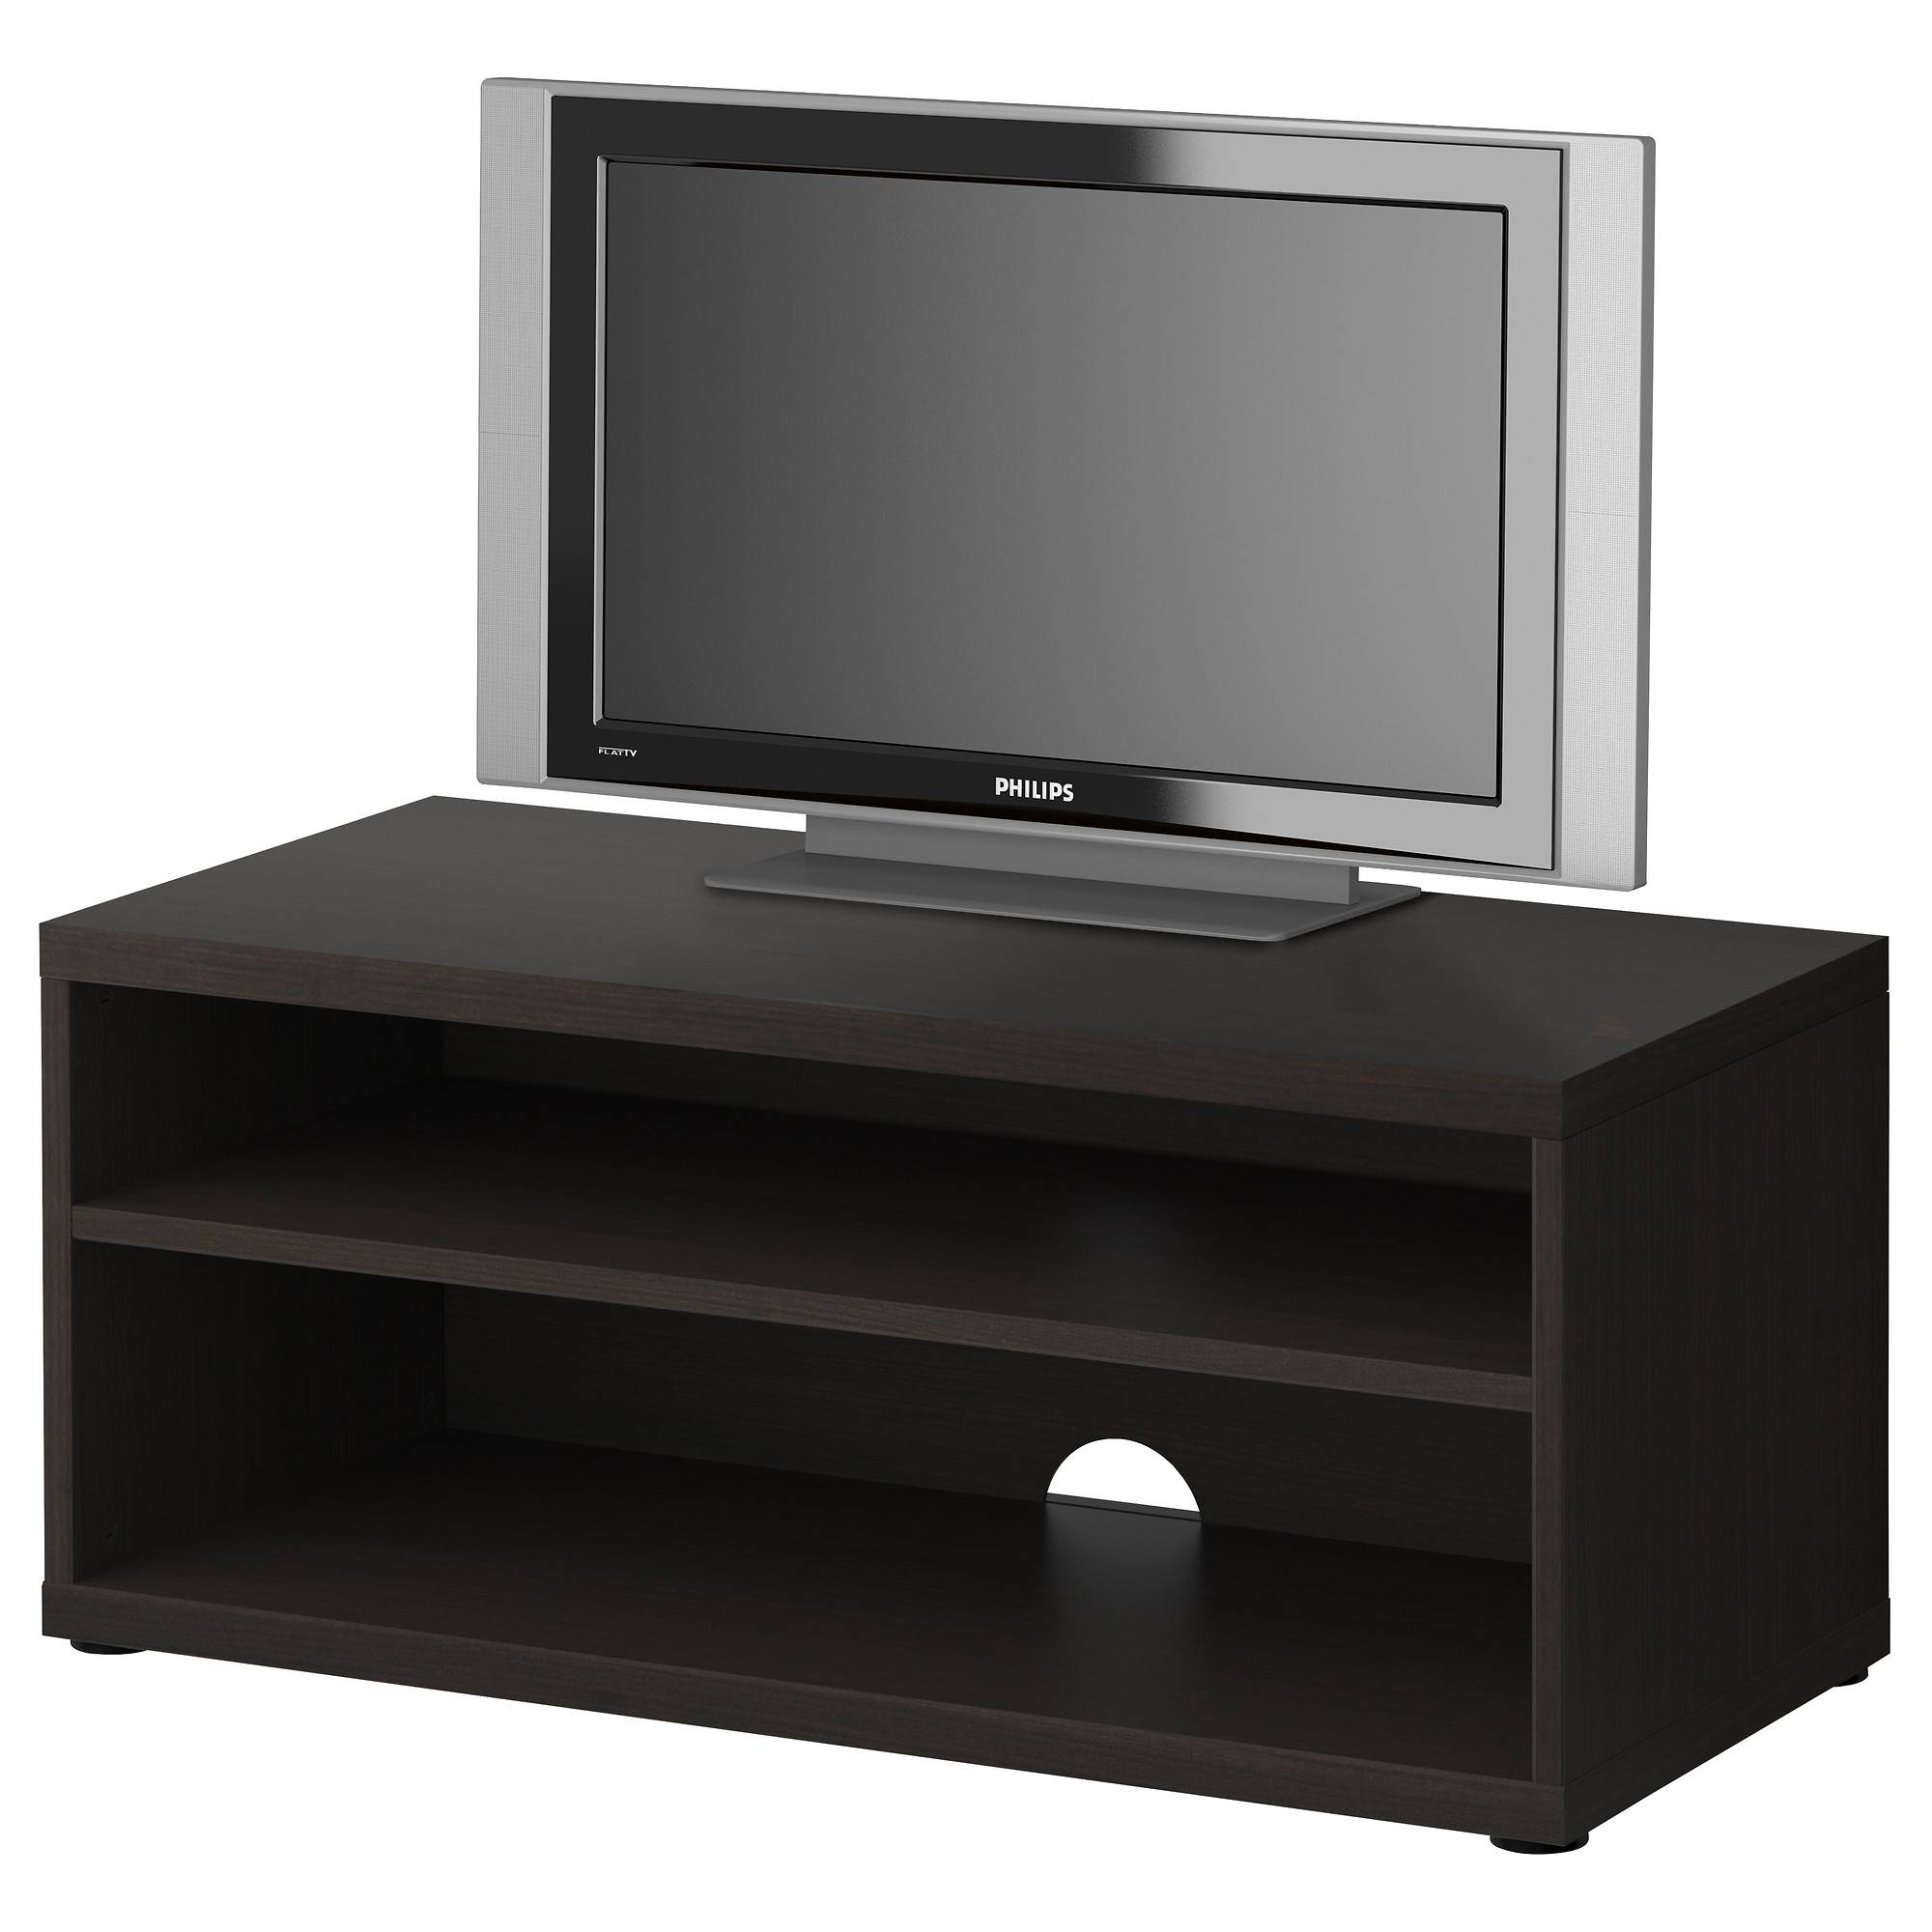 Mosjö Tv Bench Black Brown 90x40x38 Cm – Ikea Within Tv Stands With Drawers And Shelves (View 6 of 15)